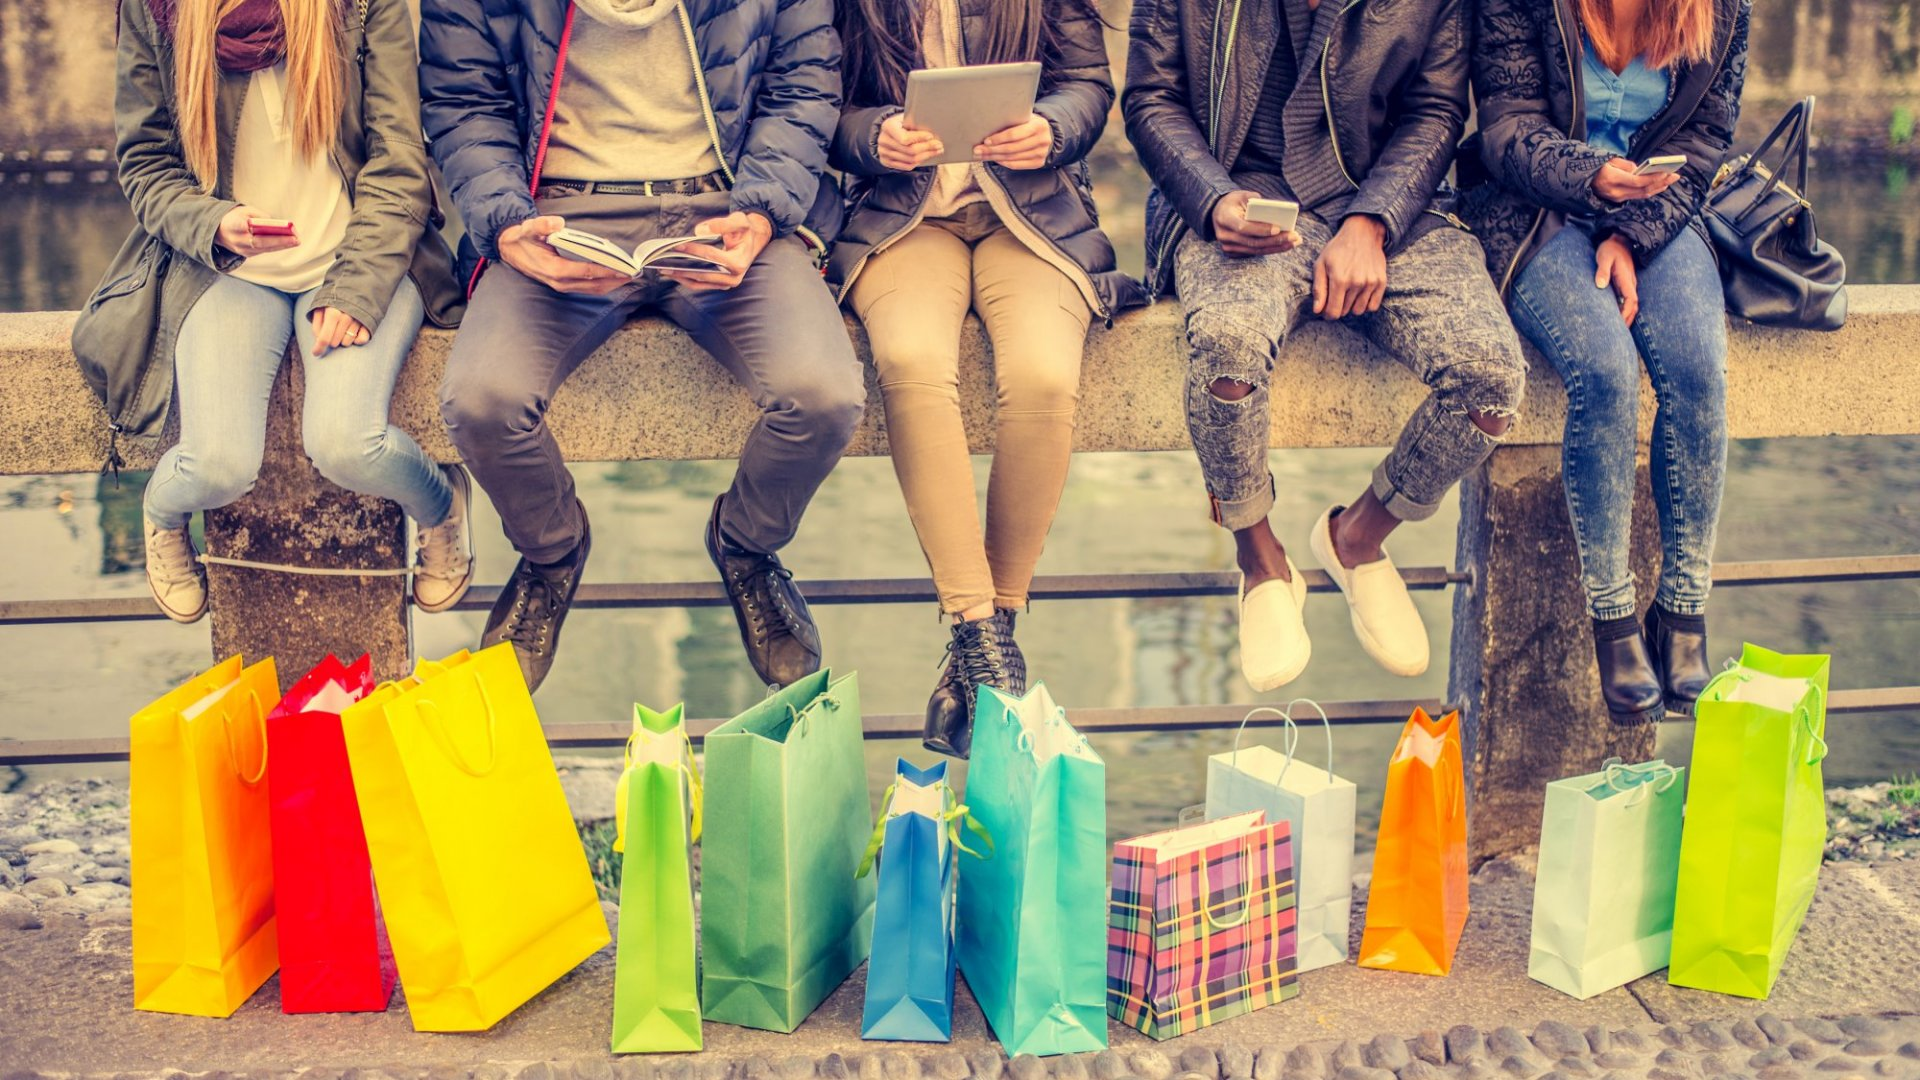 The New Retail: Showrooming, Webrooming, And Scanswapping Are How Millennials Shop